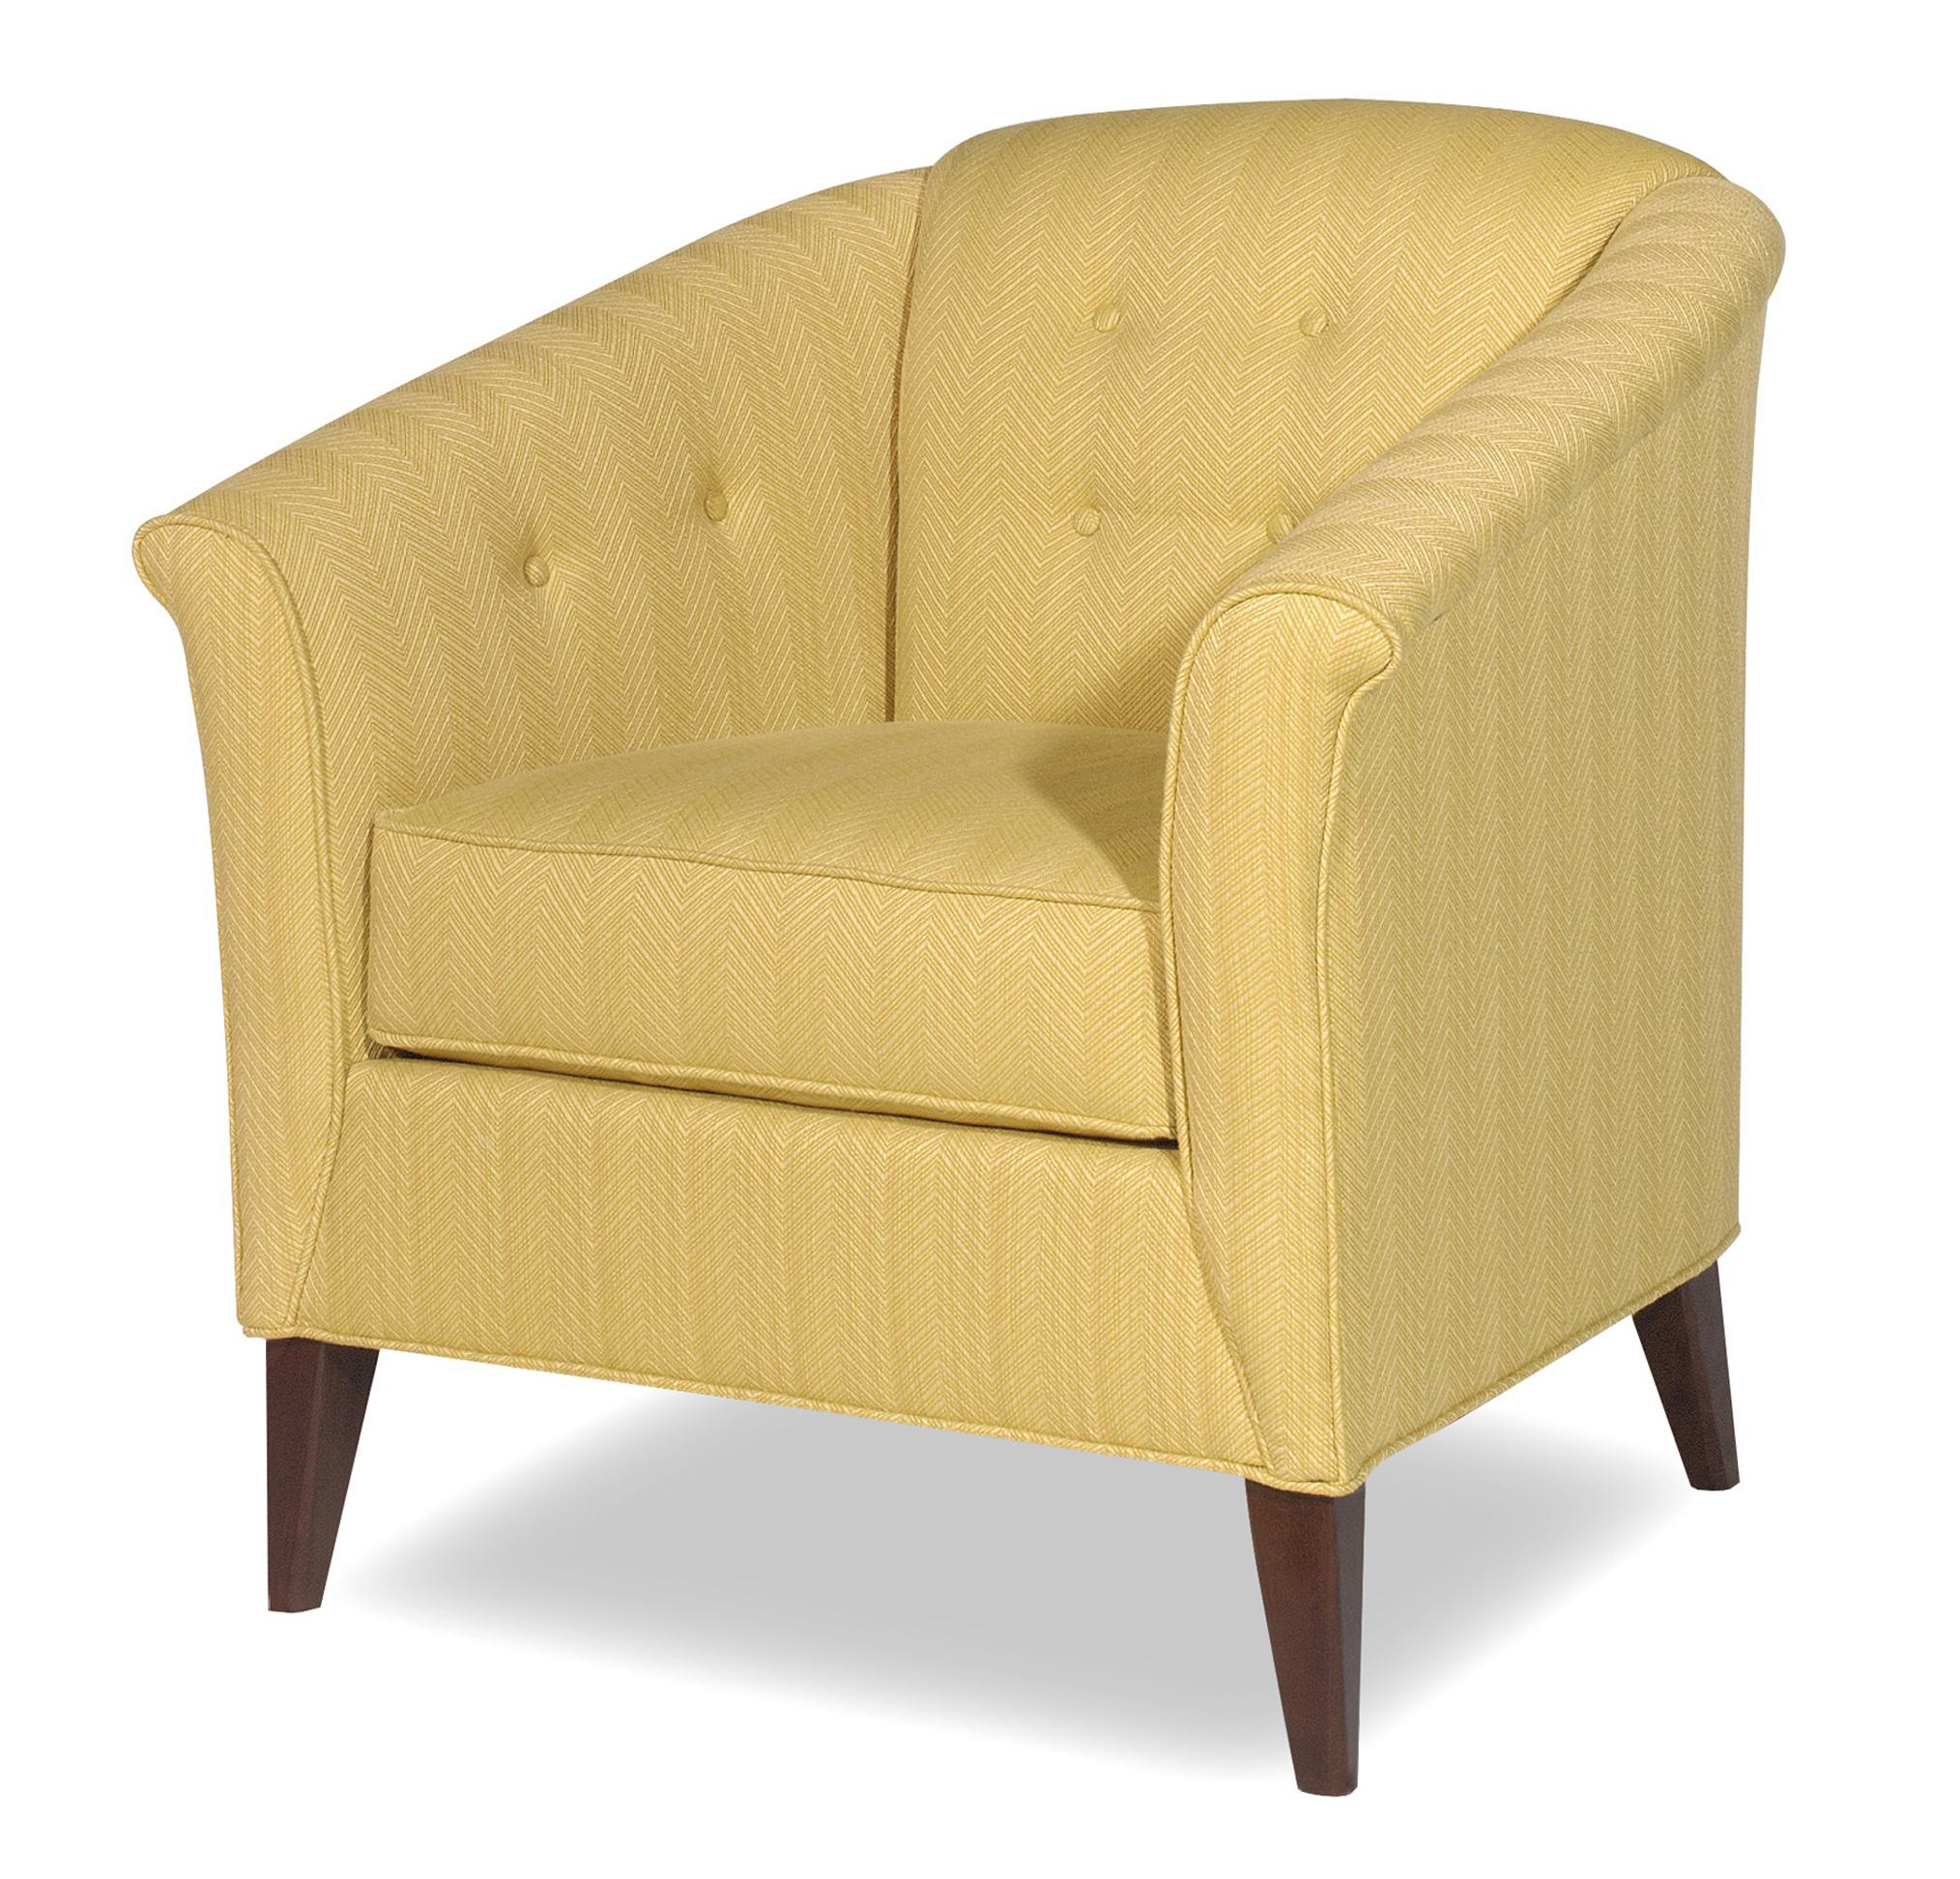 Craftmaster Accent Chairs Contemporary Button Tufted Barrel Back Chair    AHFA   Upholstered Chair Dealer Locator